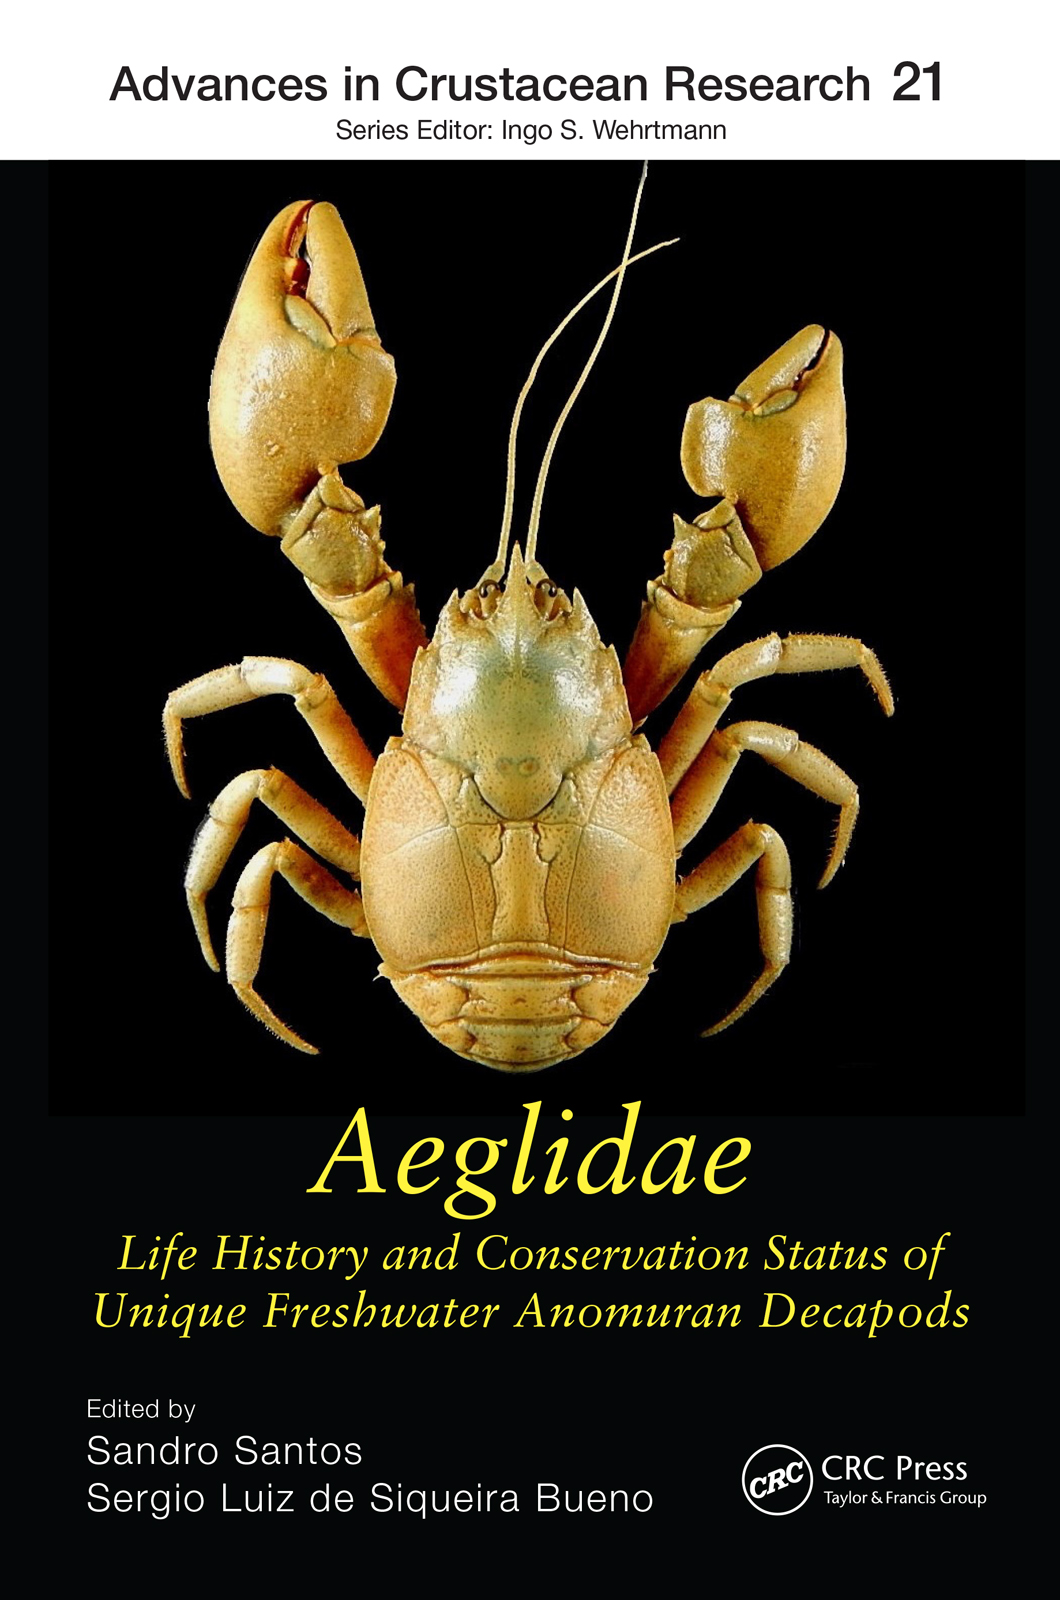 Aeglidae: Life History and Conservation Status of Unique Freshwater Anomuran Decapods book cover